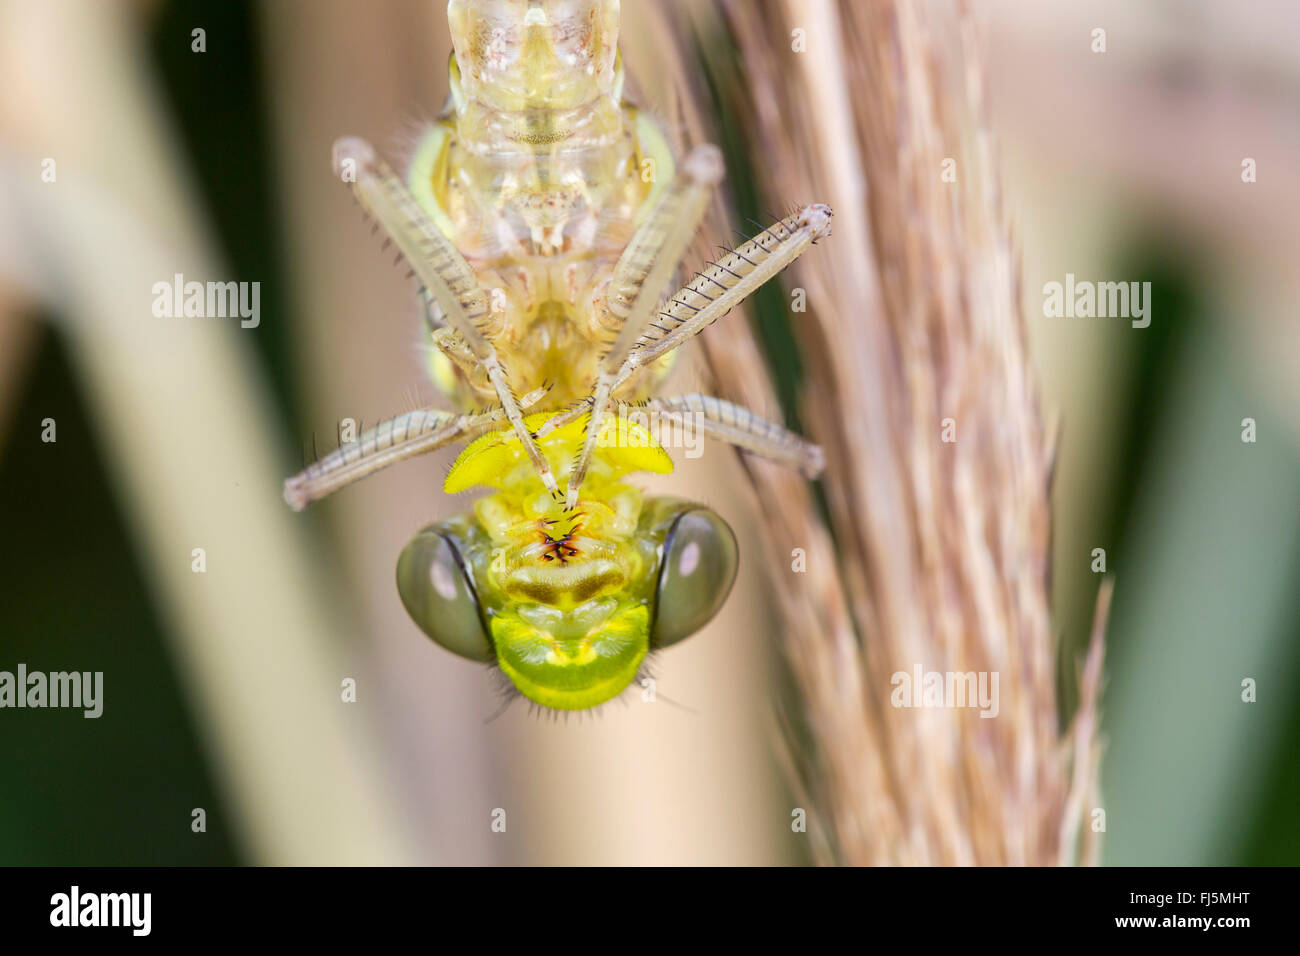 blue-green darner, southern aeshna, southern hawker (Aeshna cyanea), portrait of the newly hatched dragonfly, Germany, - Stock Image